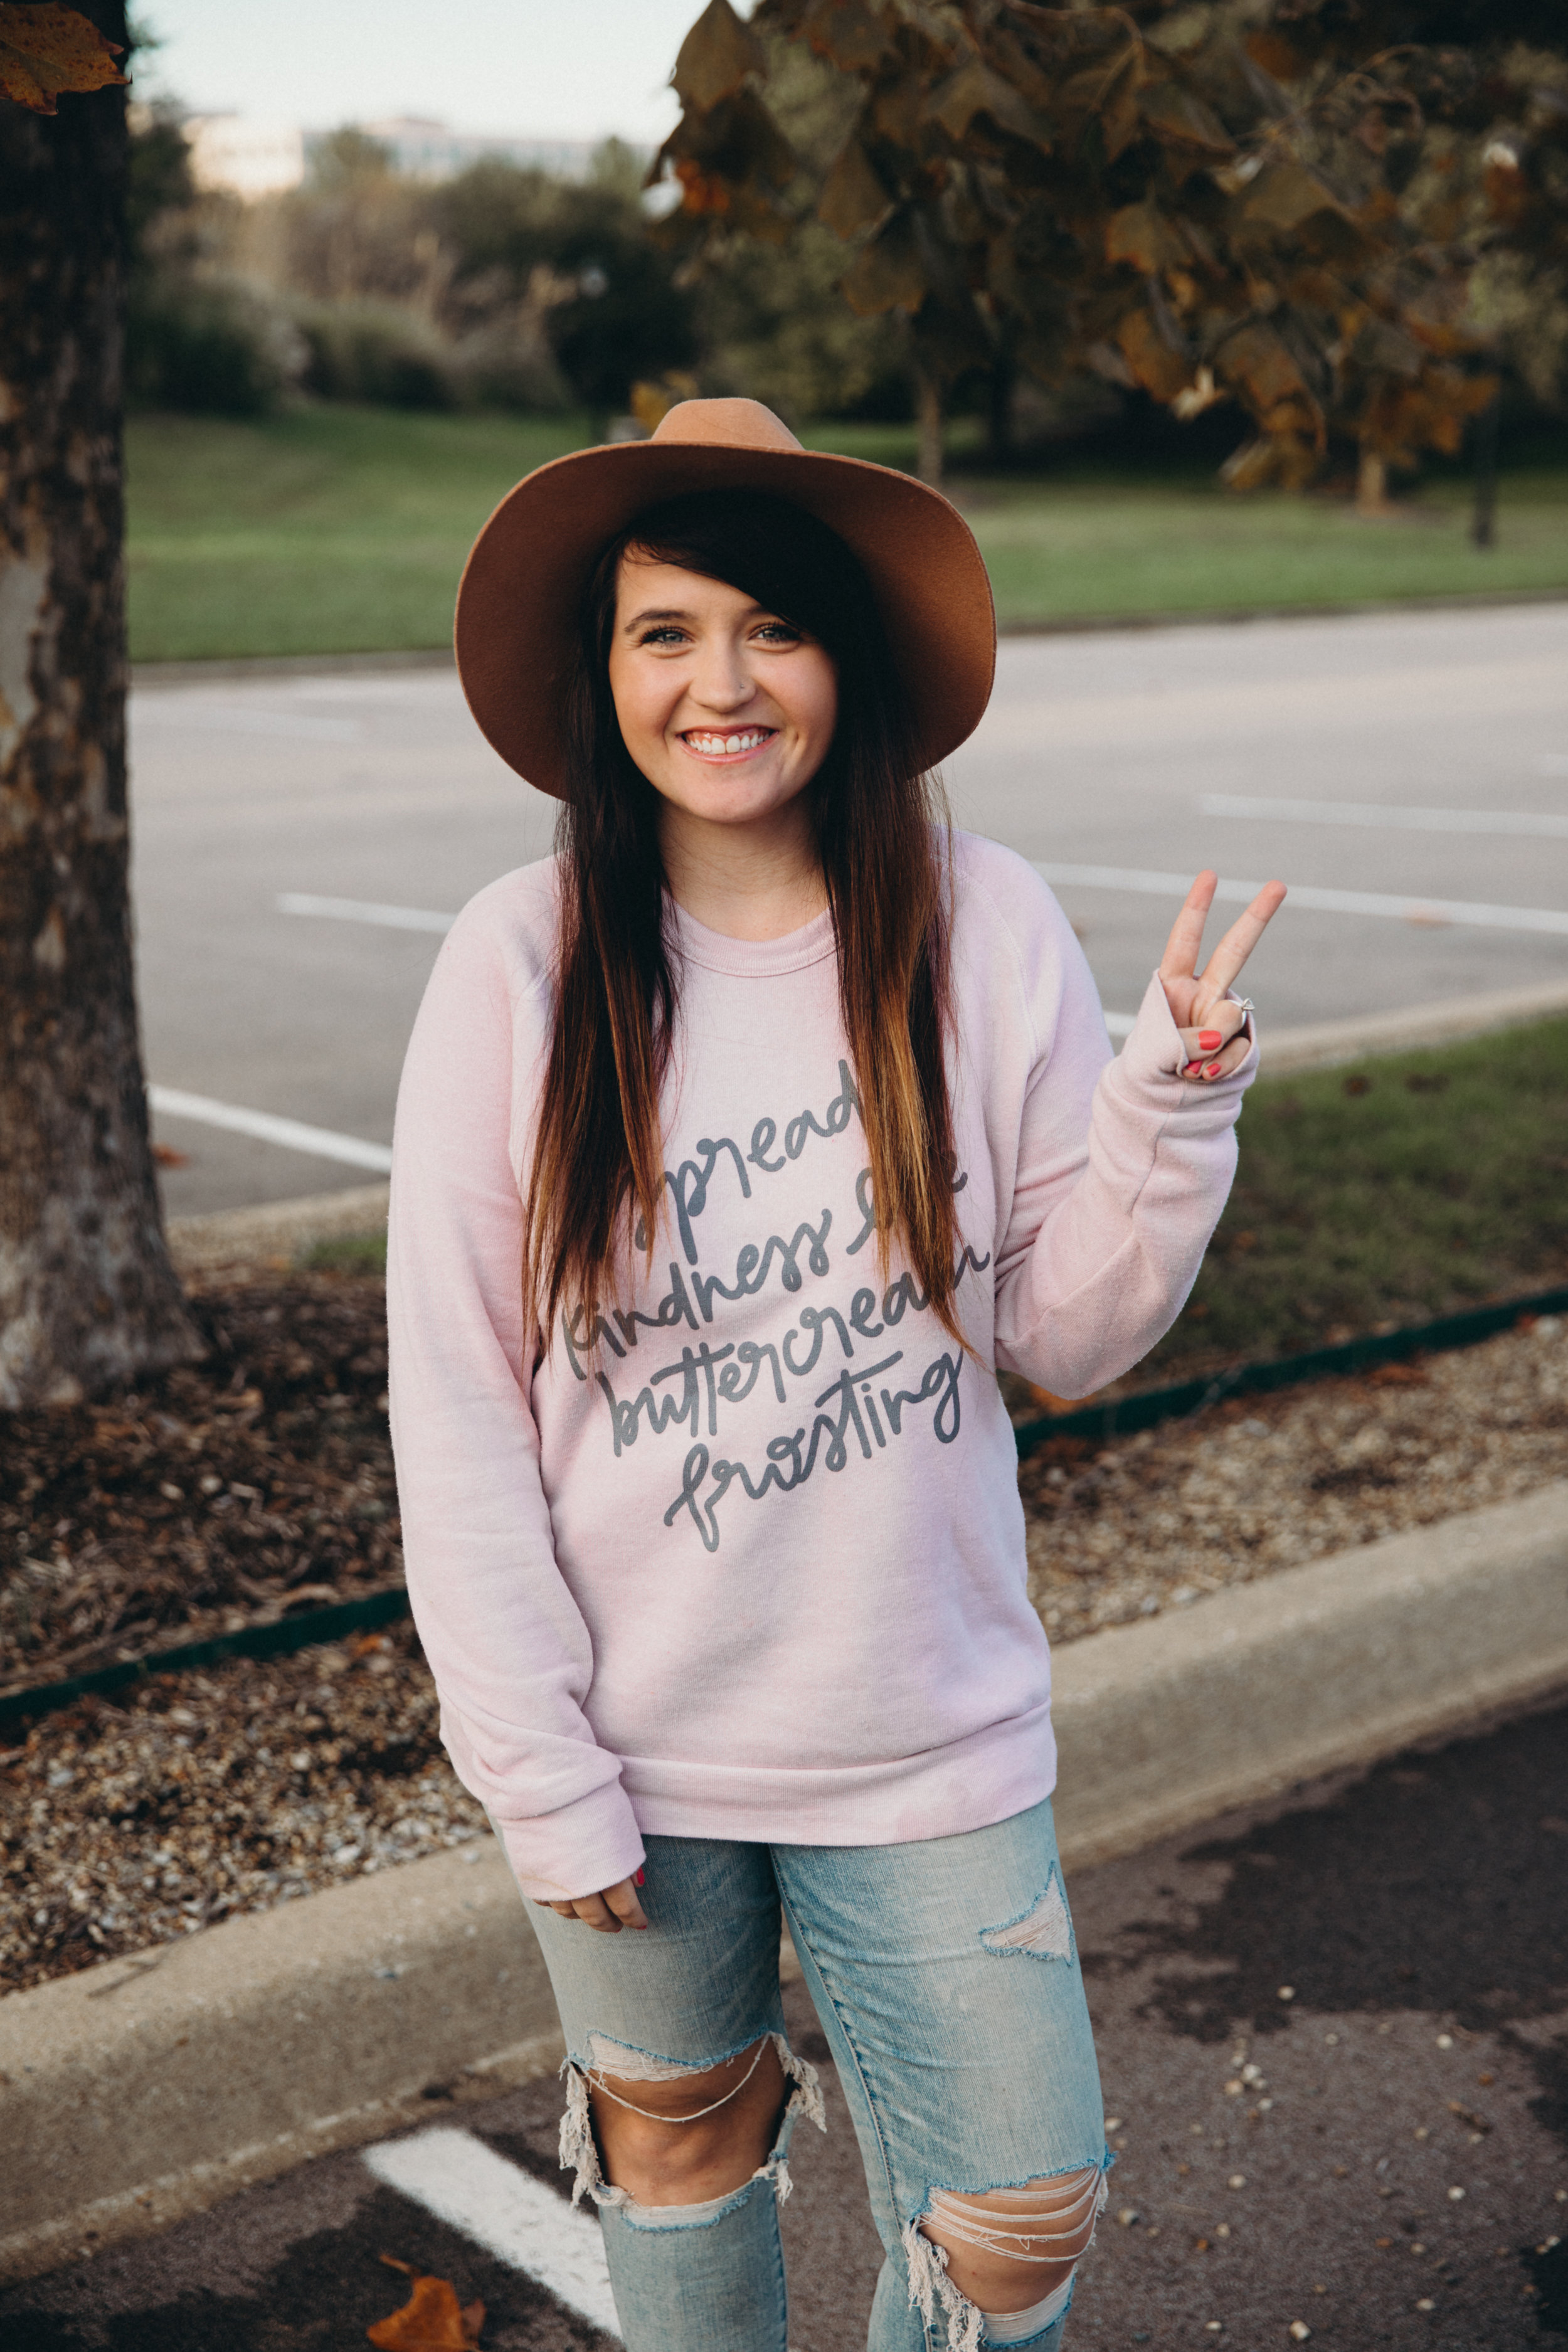 Spread Kindness Like Buttercream Frosting Chelcey Tate x The Cake Shop www.chelceytate.com